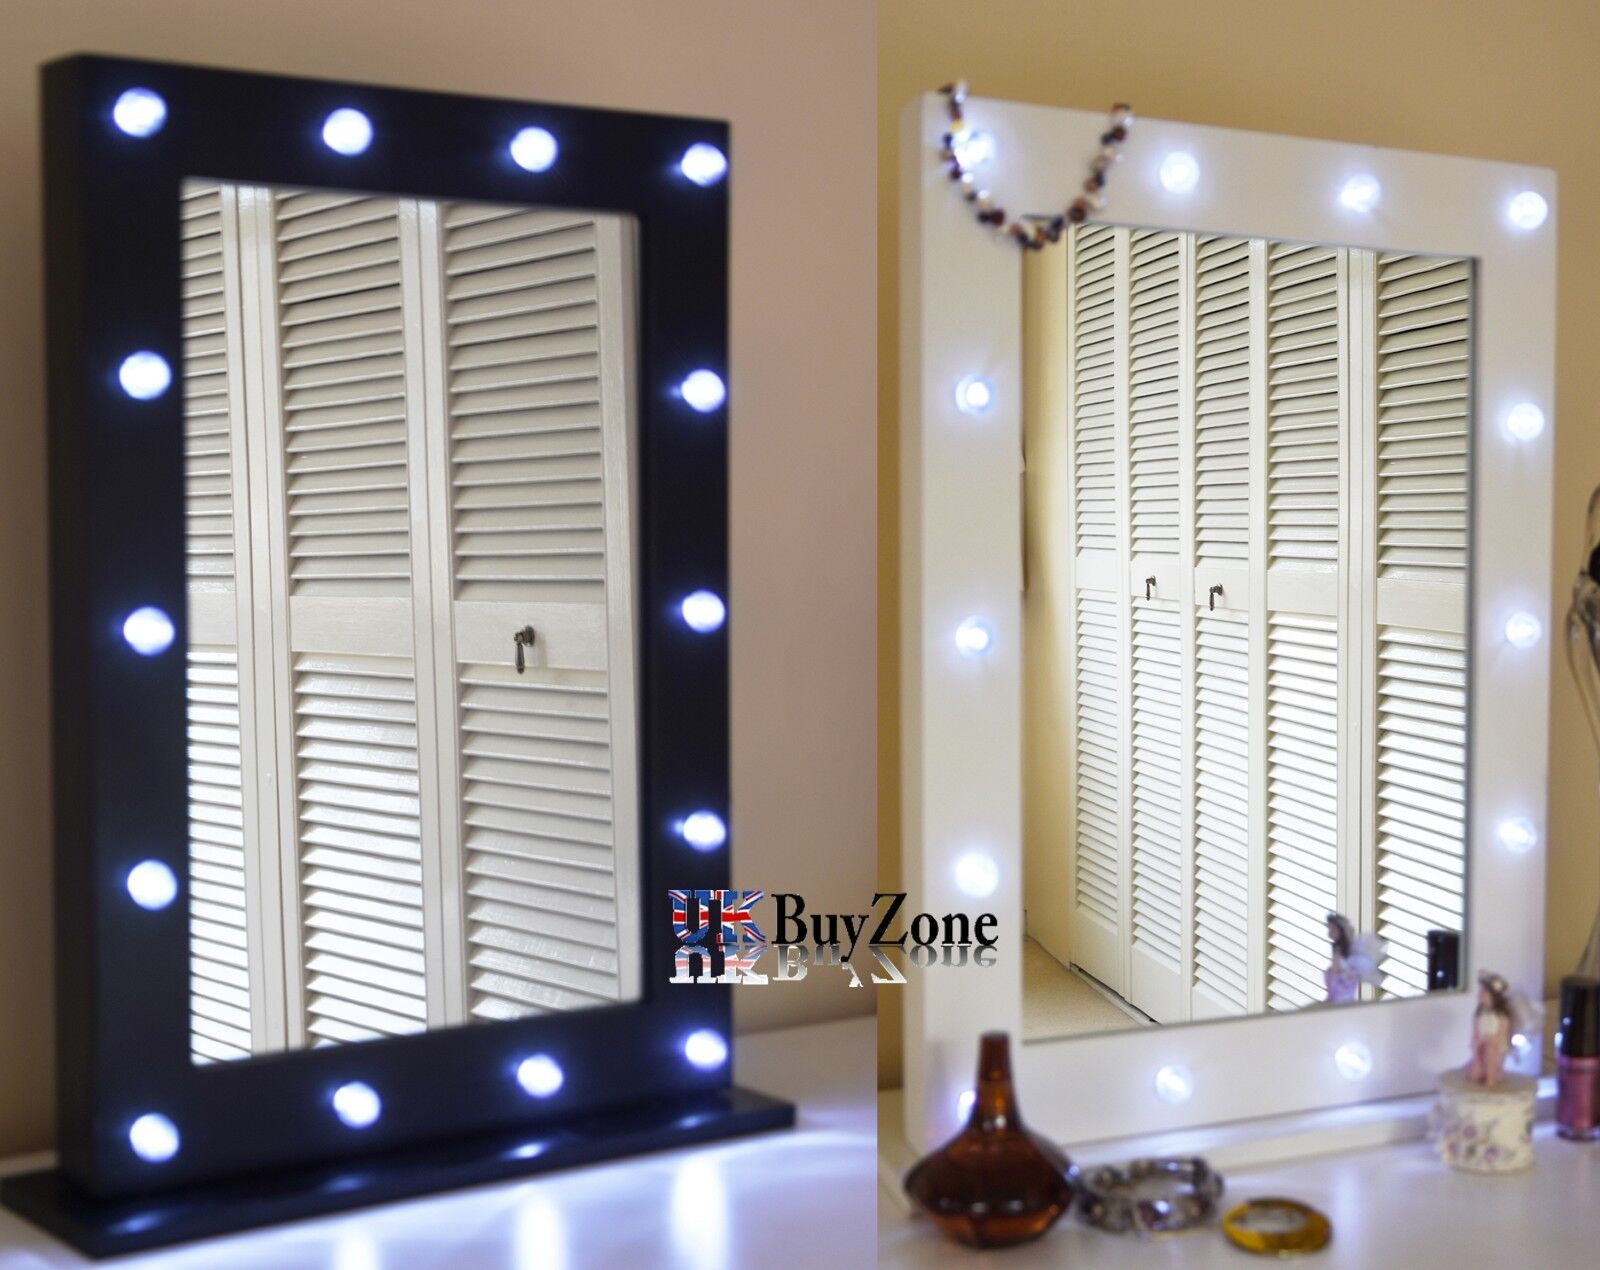 illumine coiffeuse hollywood miroir ampoules led maquillage miroir de courtoisie ebay. Black Bedroom Furniture Sets. Home Design Ideas